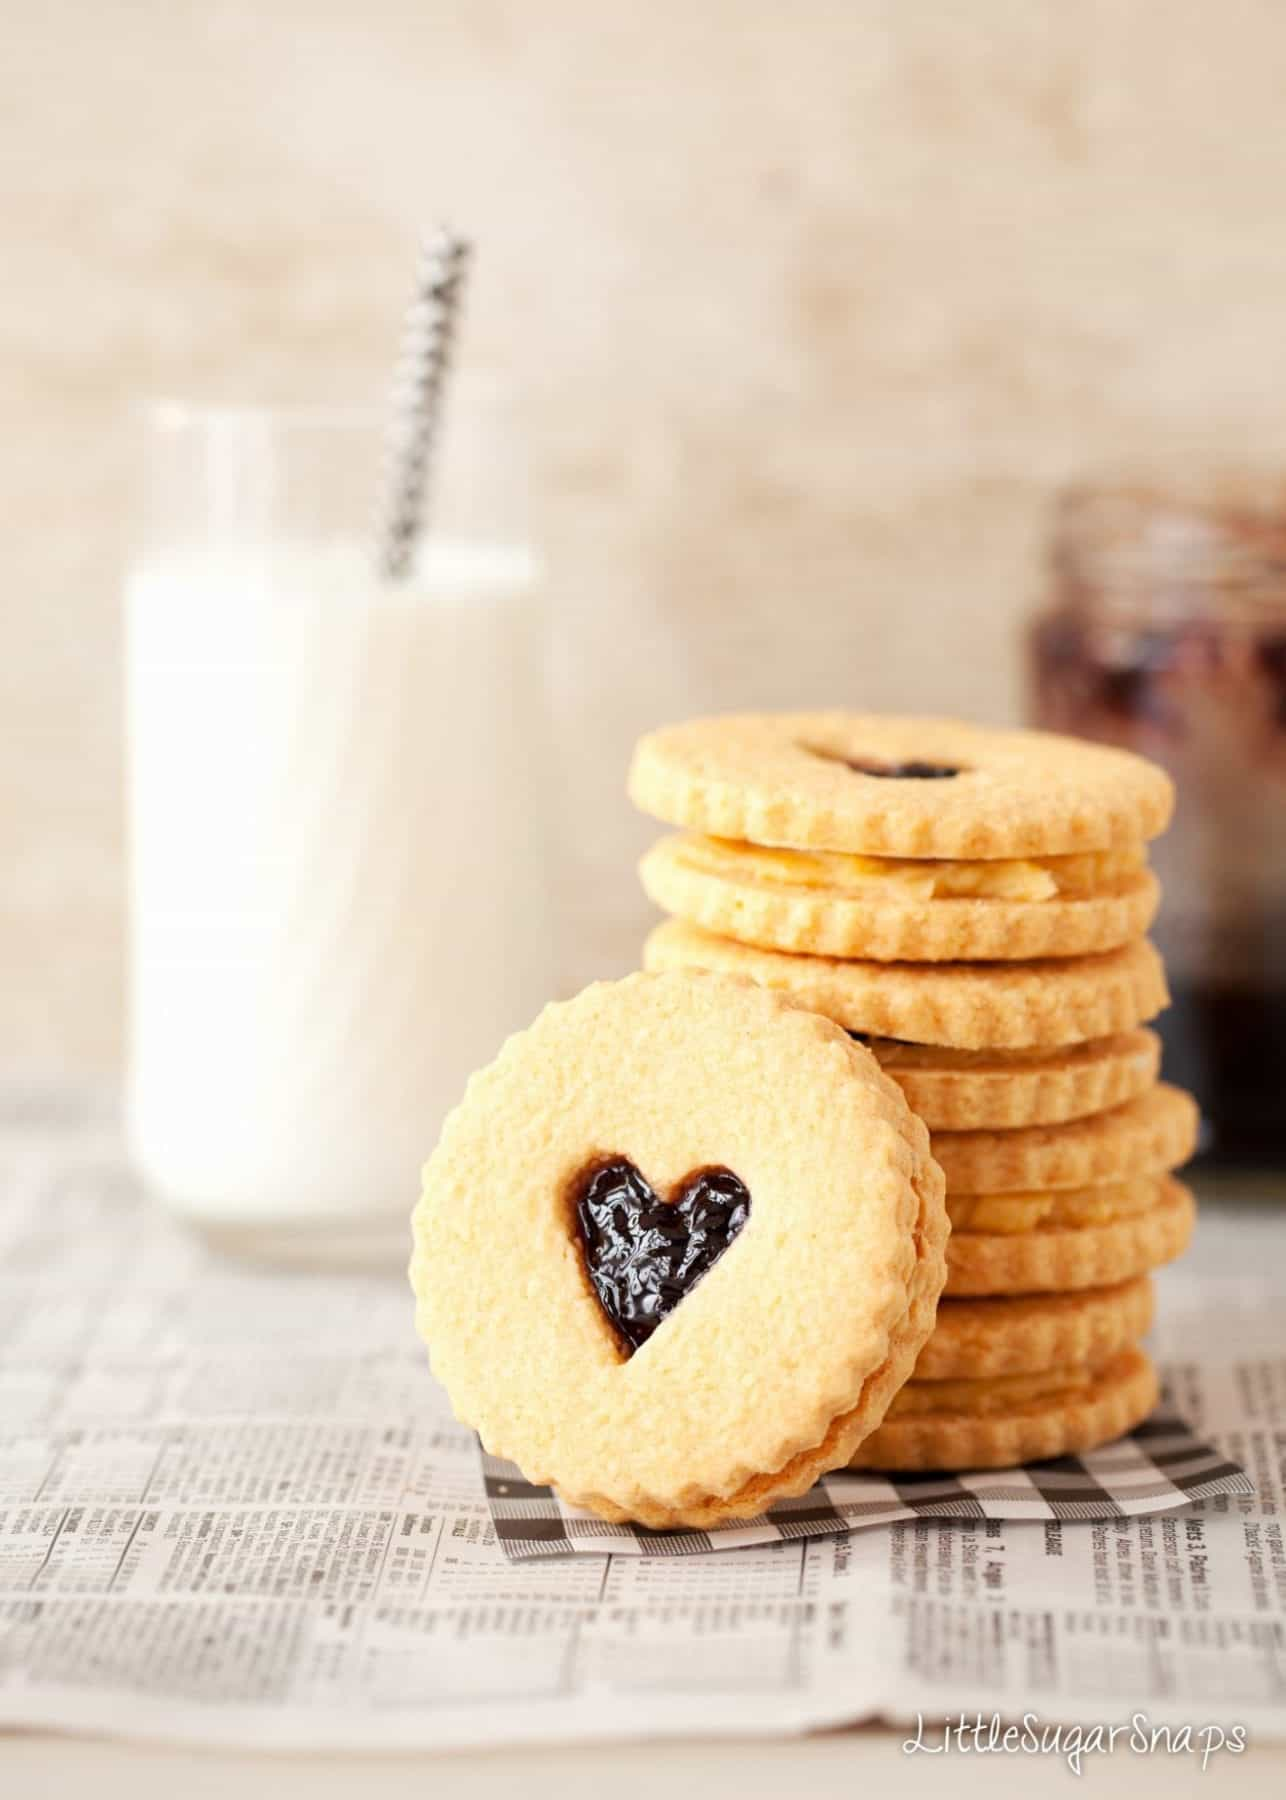 A stack of jam and custard creams biscuits with a love heart cut out to reveal the jammy centre